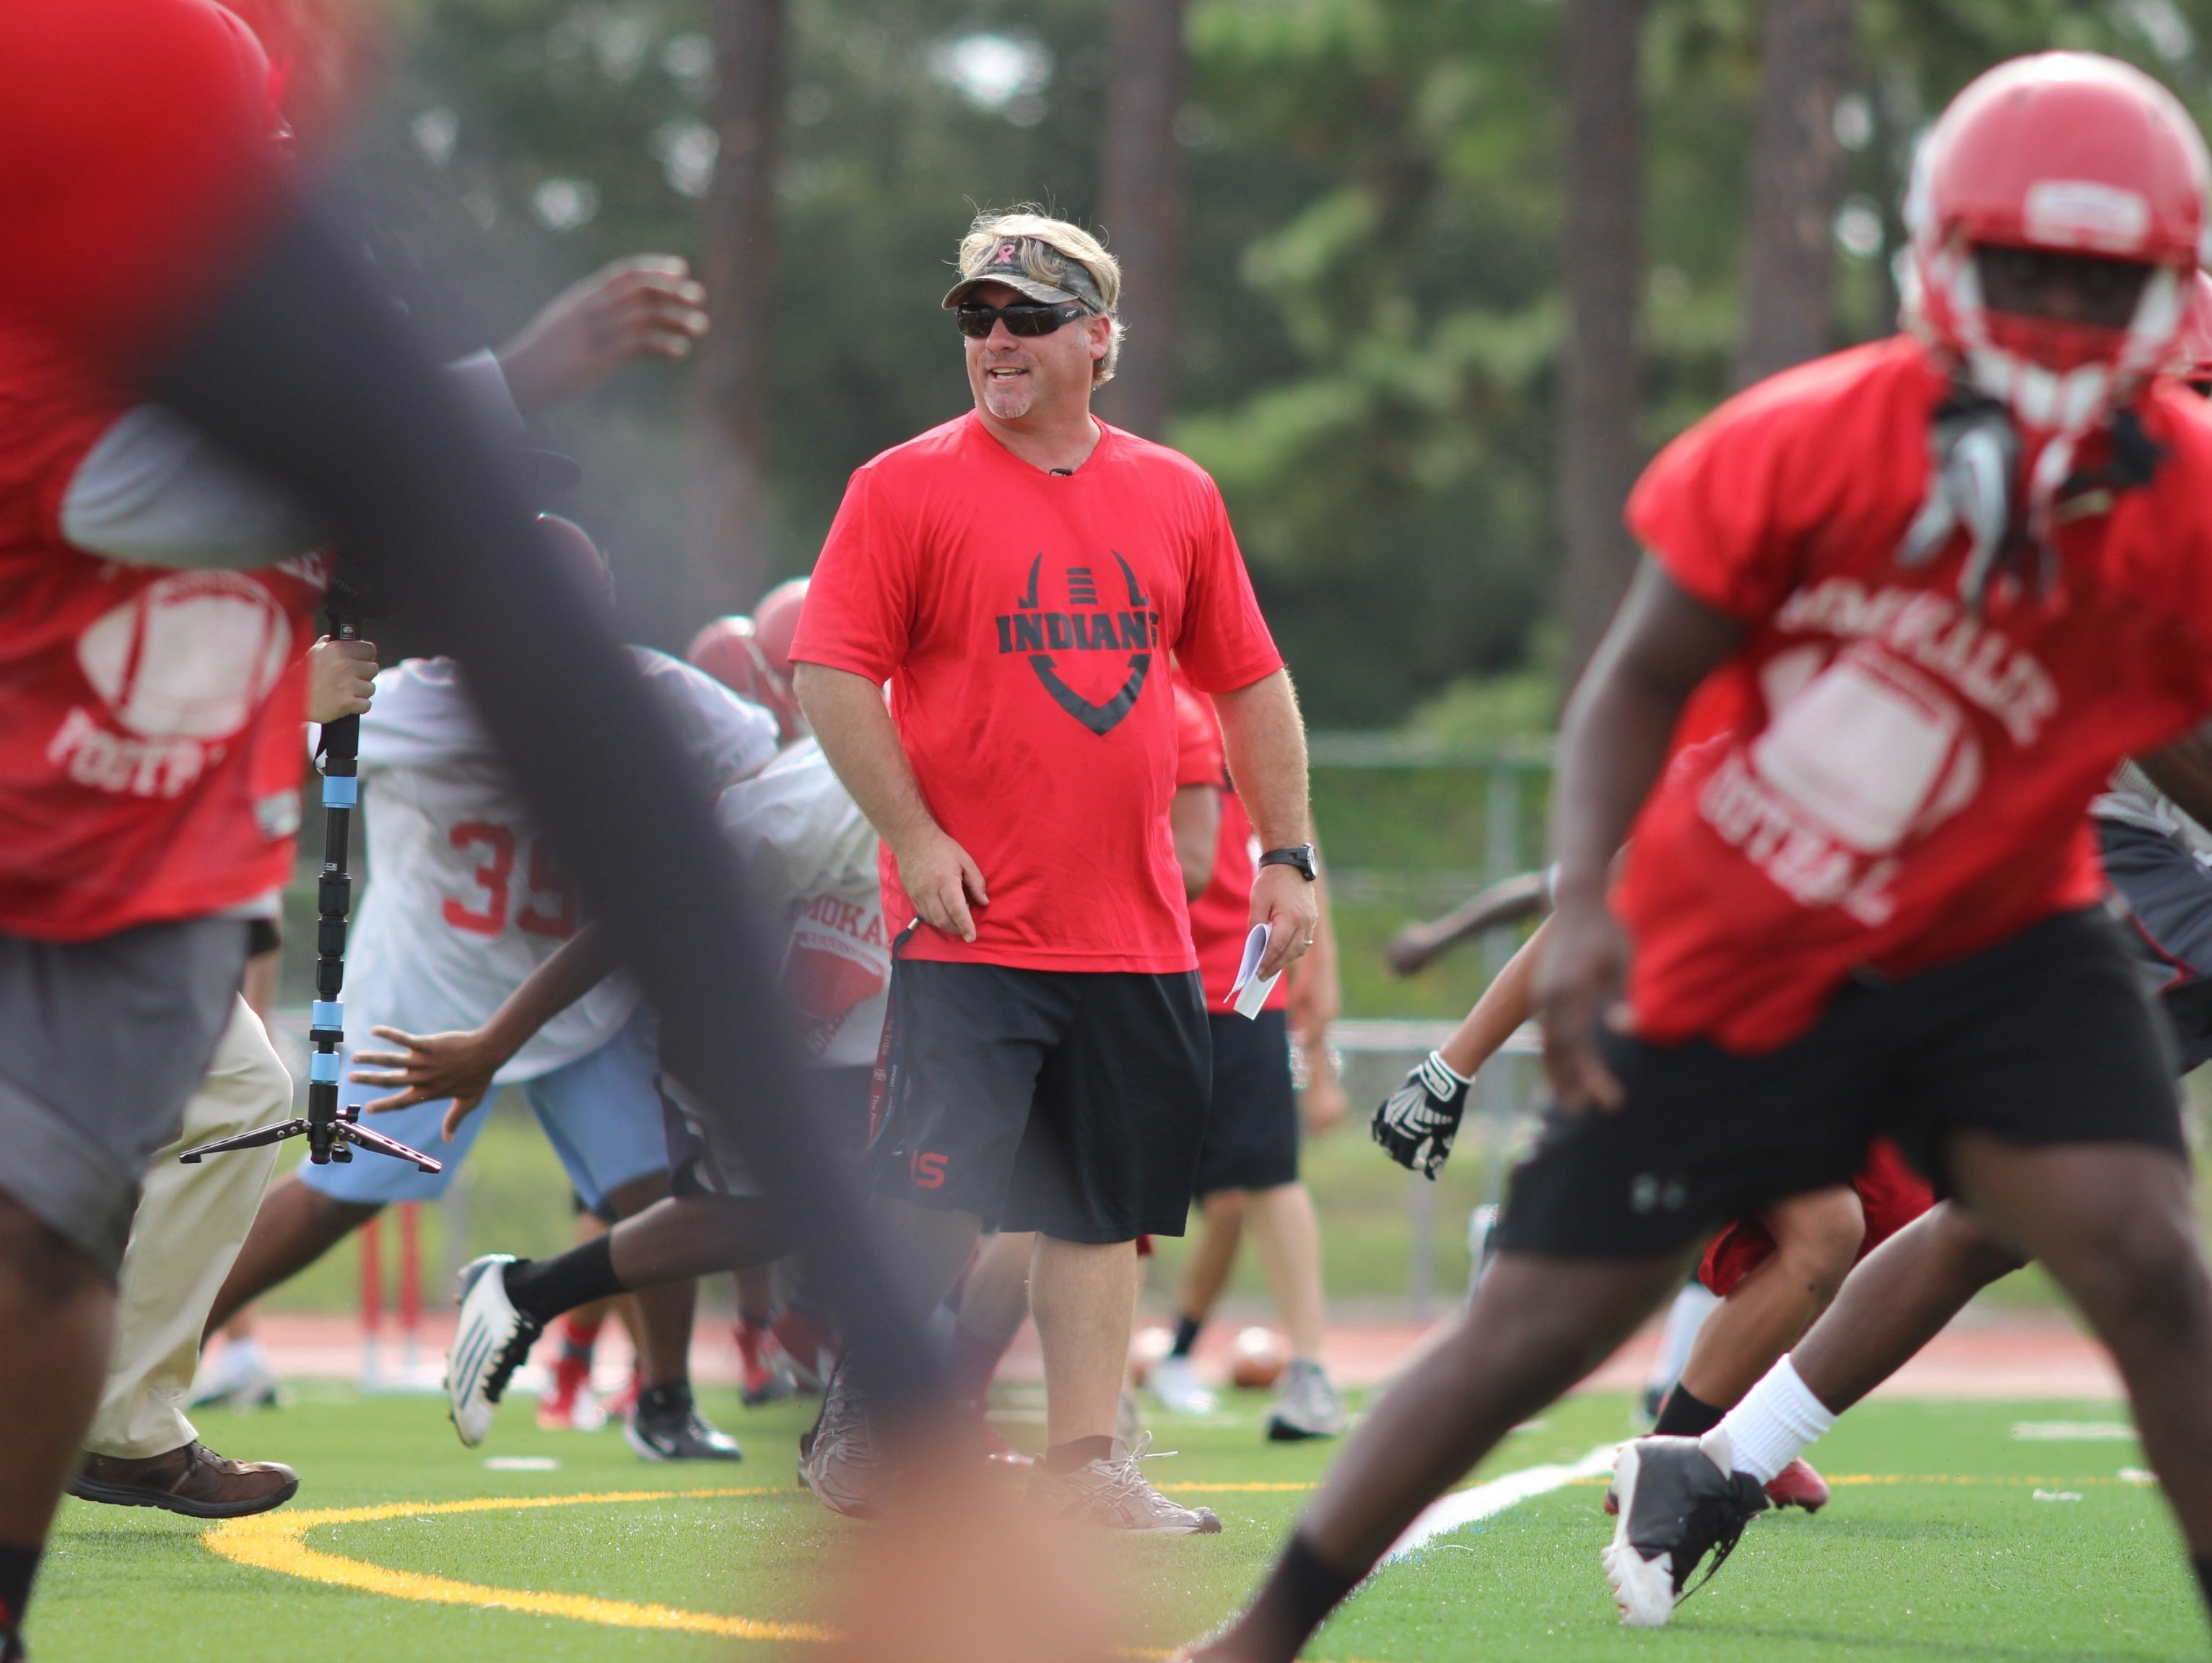 Immokalee head coach Dale More resigned as head coach of the program after a 6-6 record.